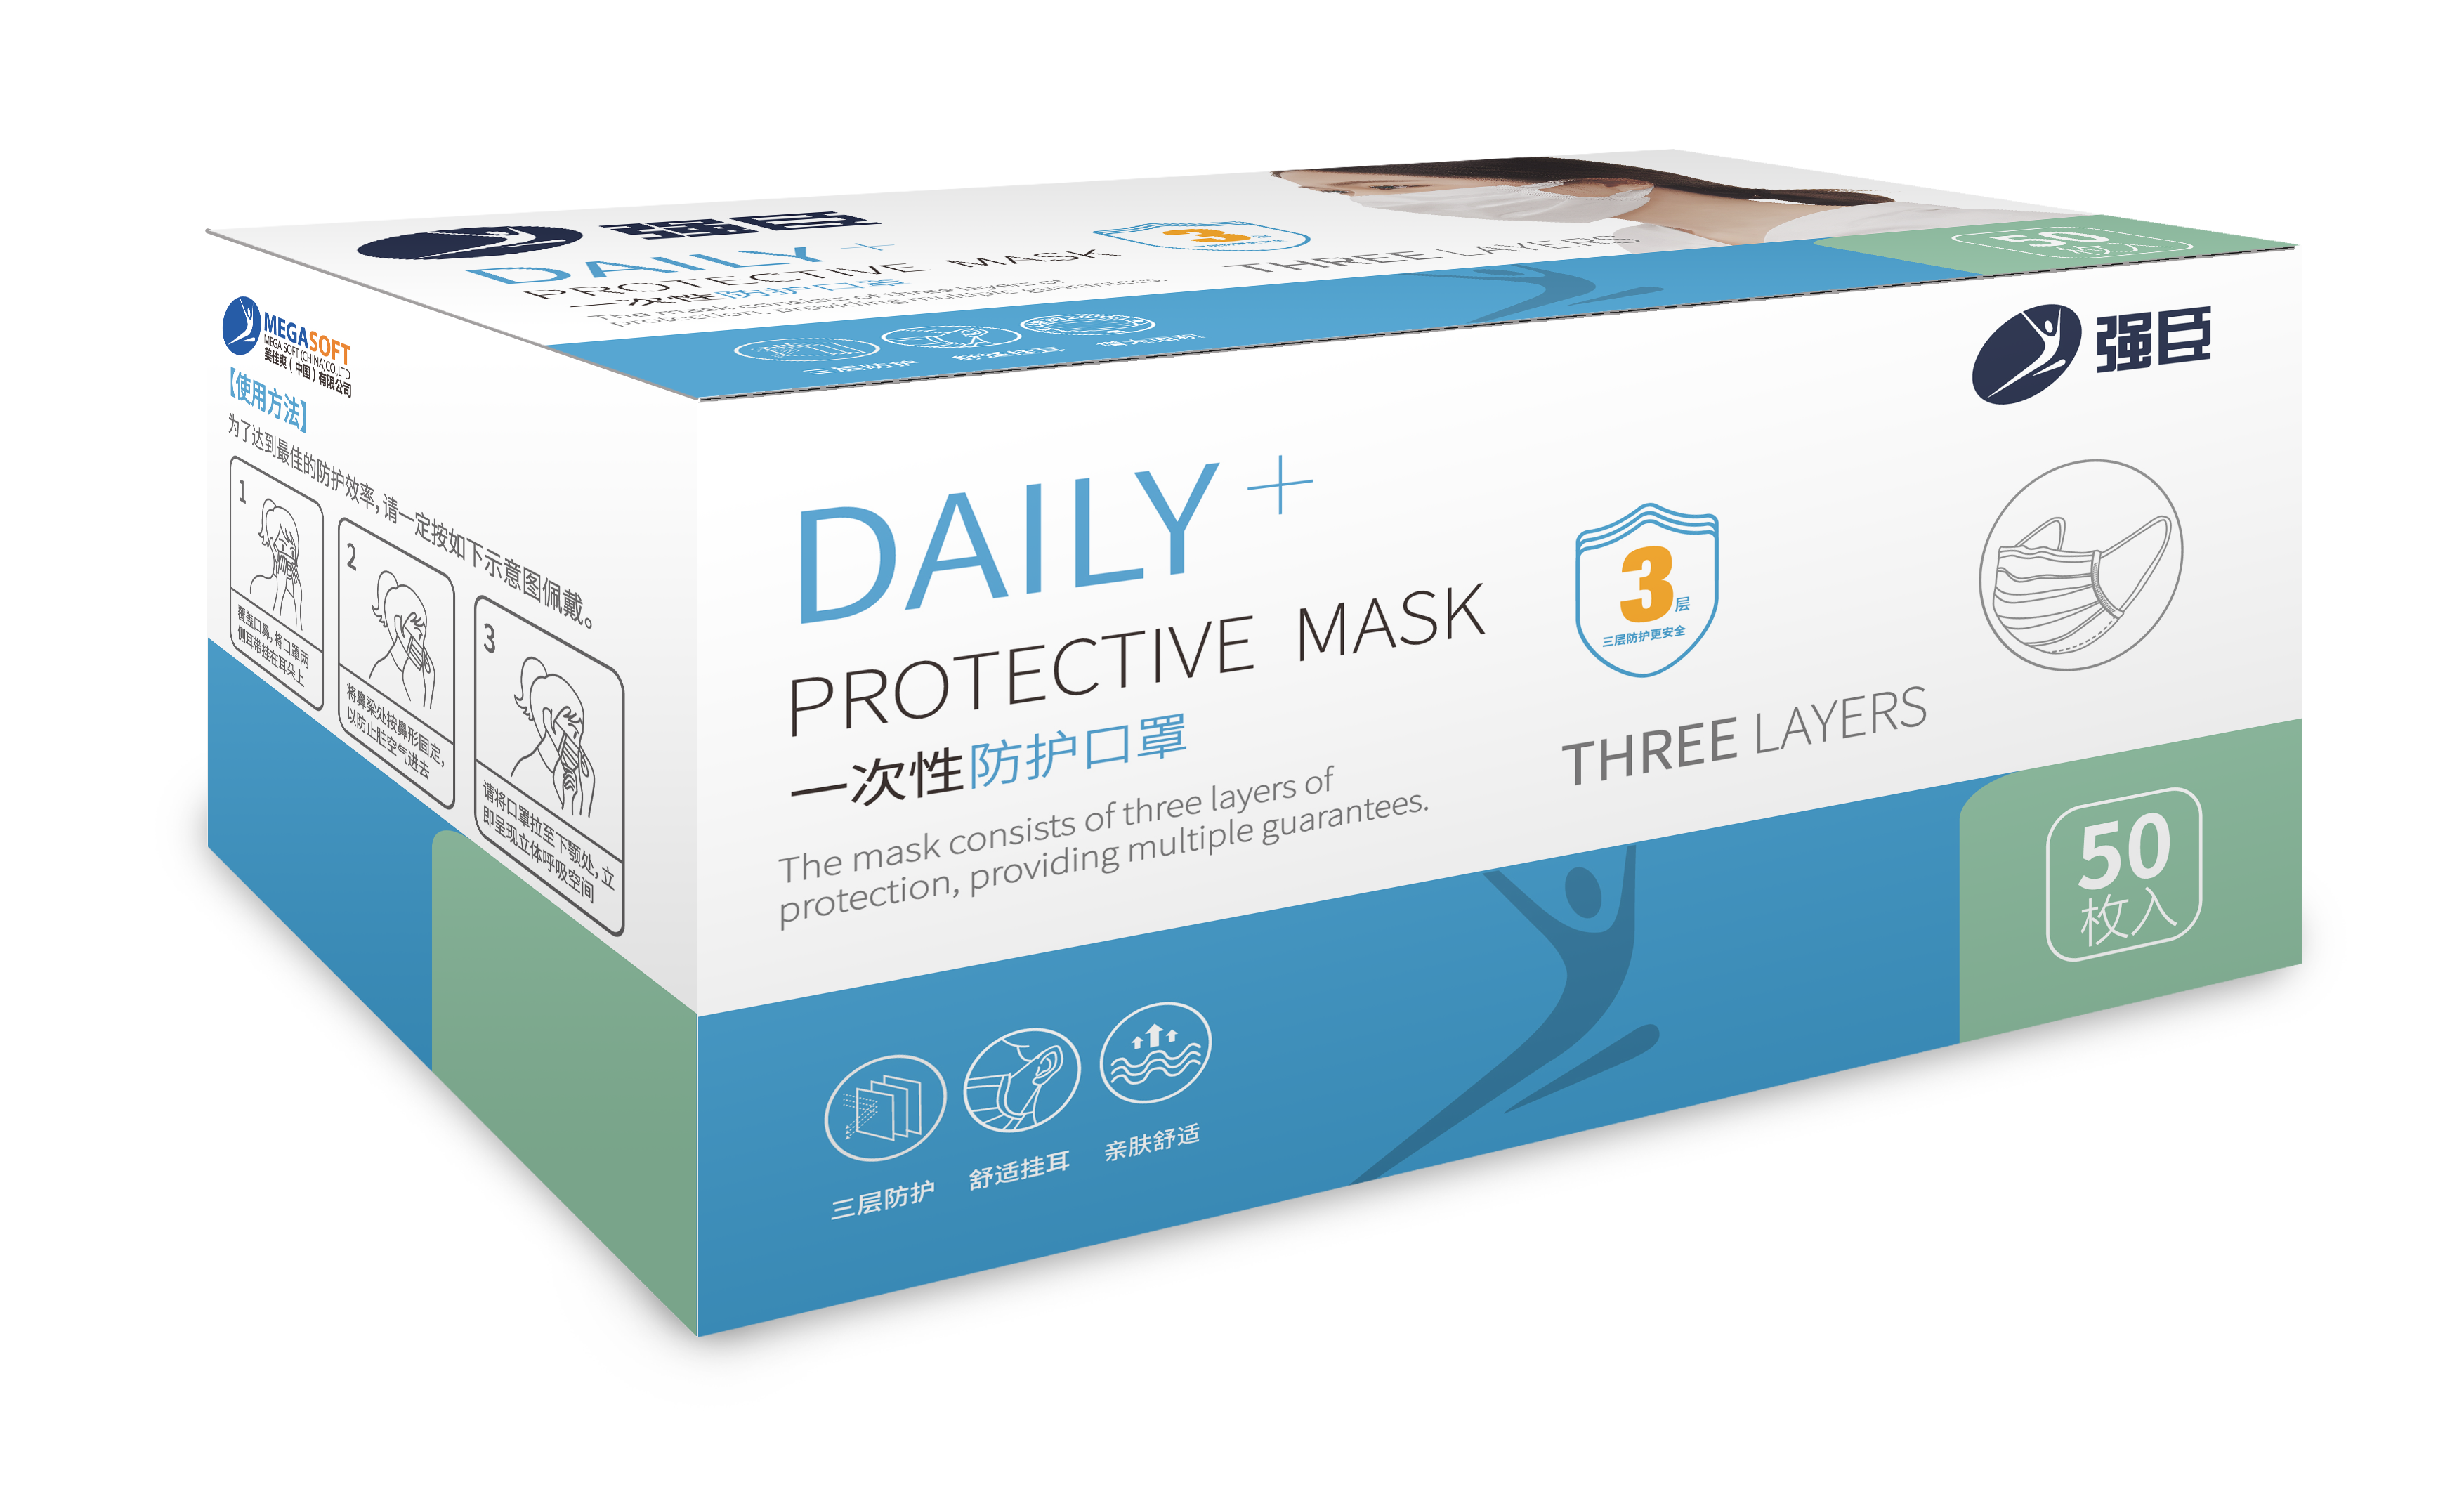 强臣 Daily Protective Mask (50pcs)